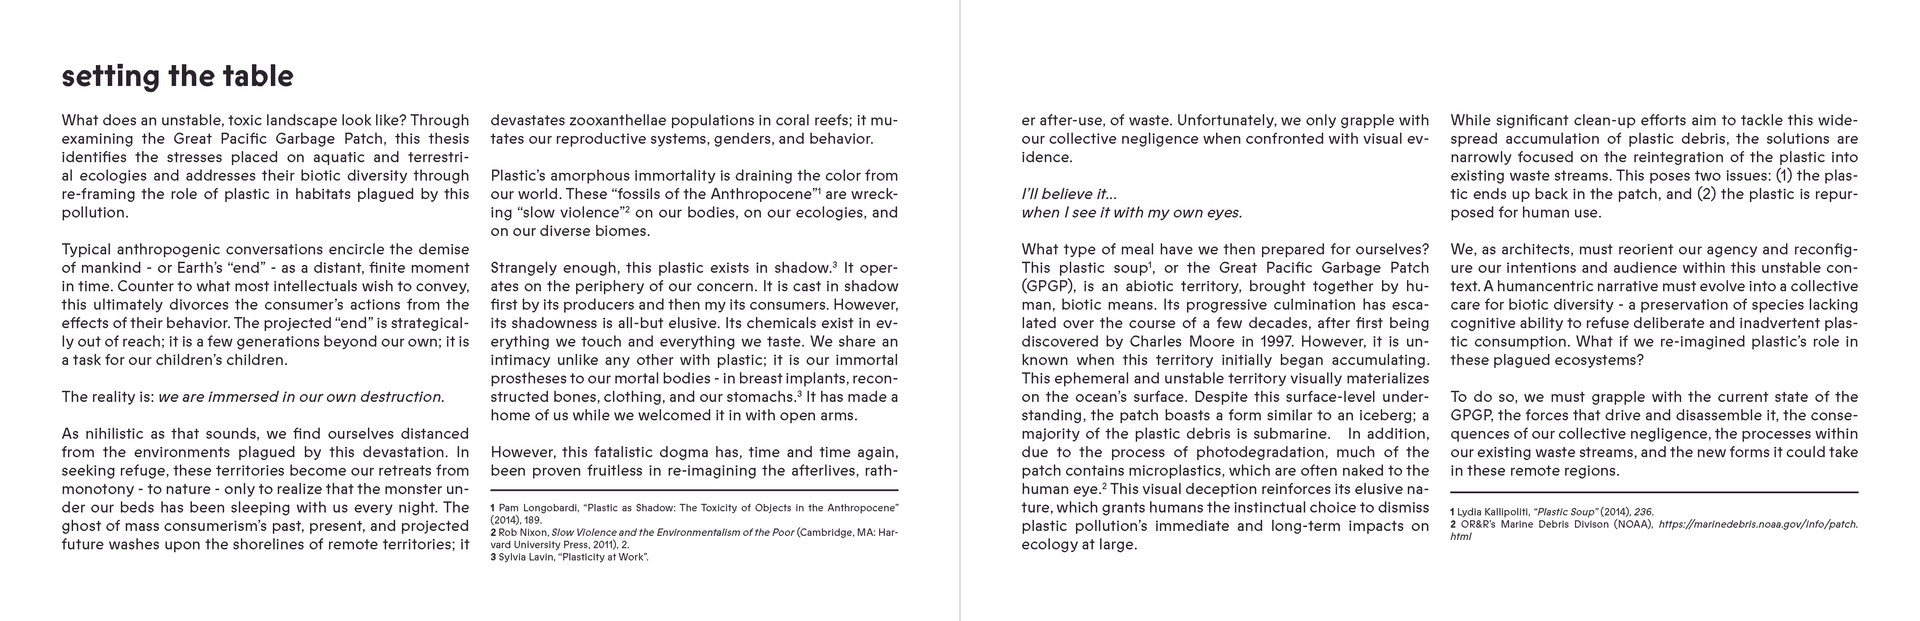 thesis book contents3.jpg